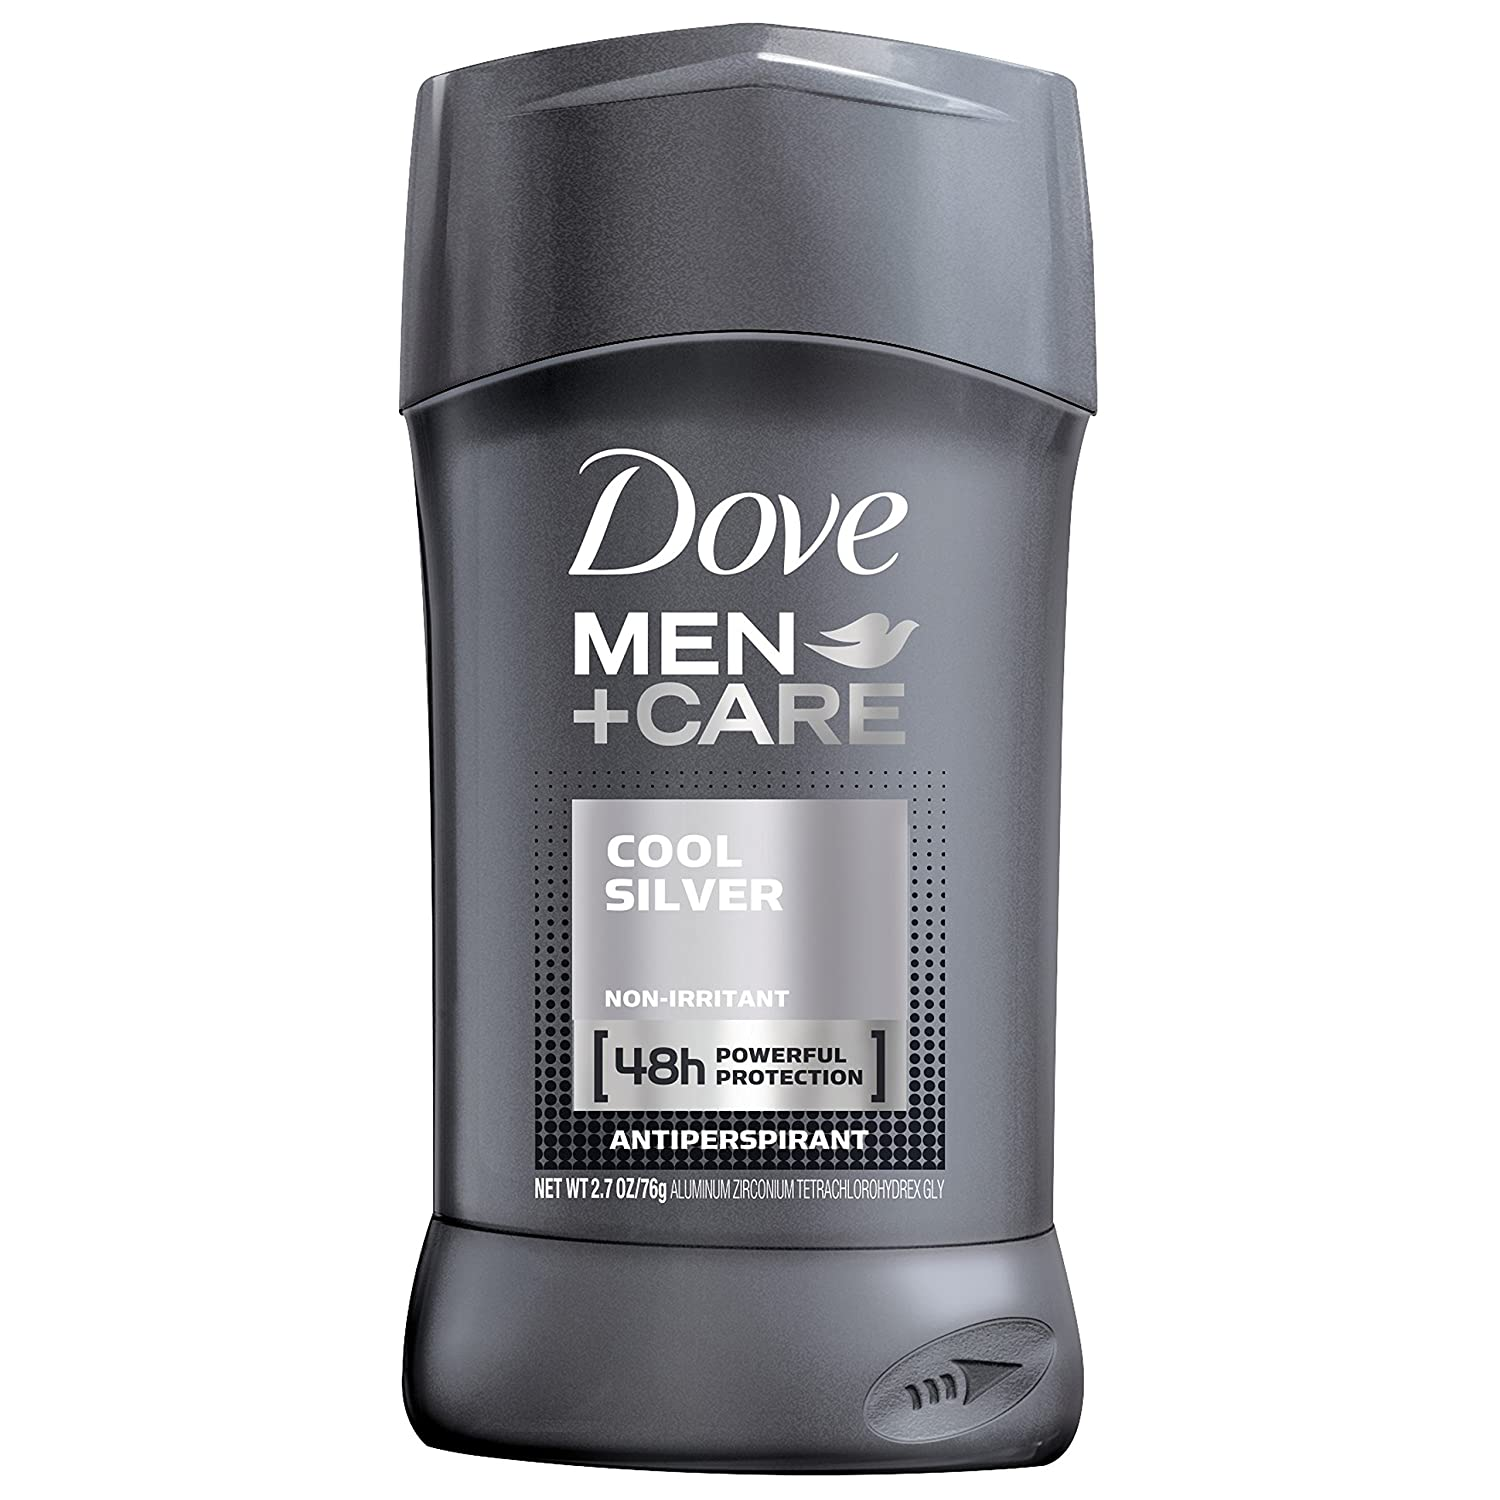 Dove Men+Care Antiperspirant Deodorant Stick, Cool Silver, 2.7 oz